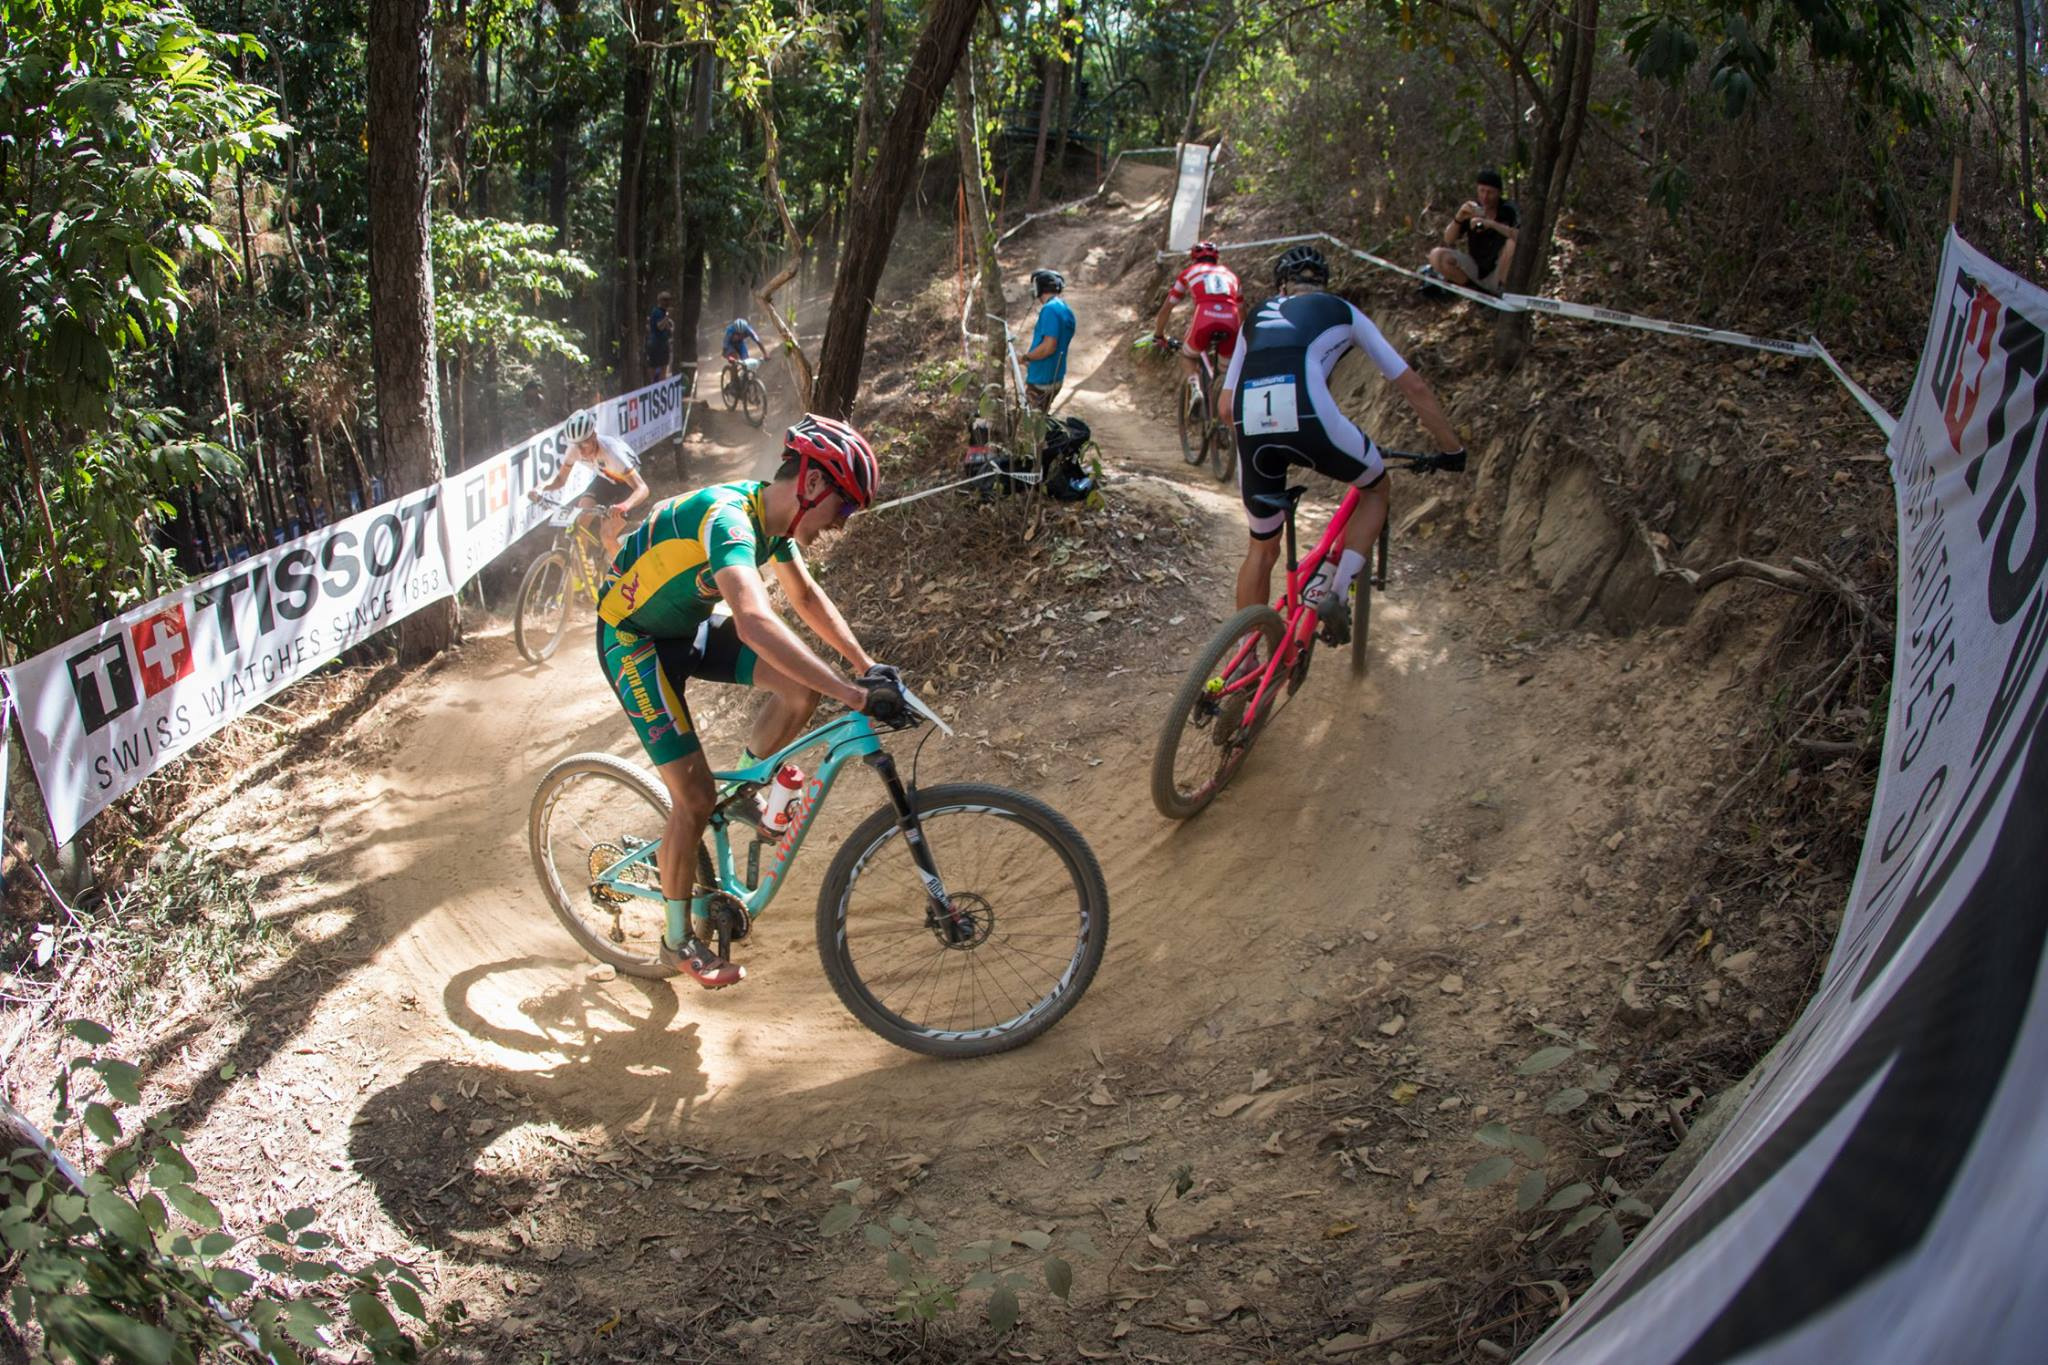 South African under-23 mountain biker Alan Hatherly achieved a career-best result when he claimed a silver medal at the 2017 UCI Mountain Bike World Championships in Cairns, Australia, on Friday 8 September. Photo credit:Michal Cerveny/UCI